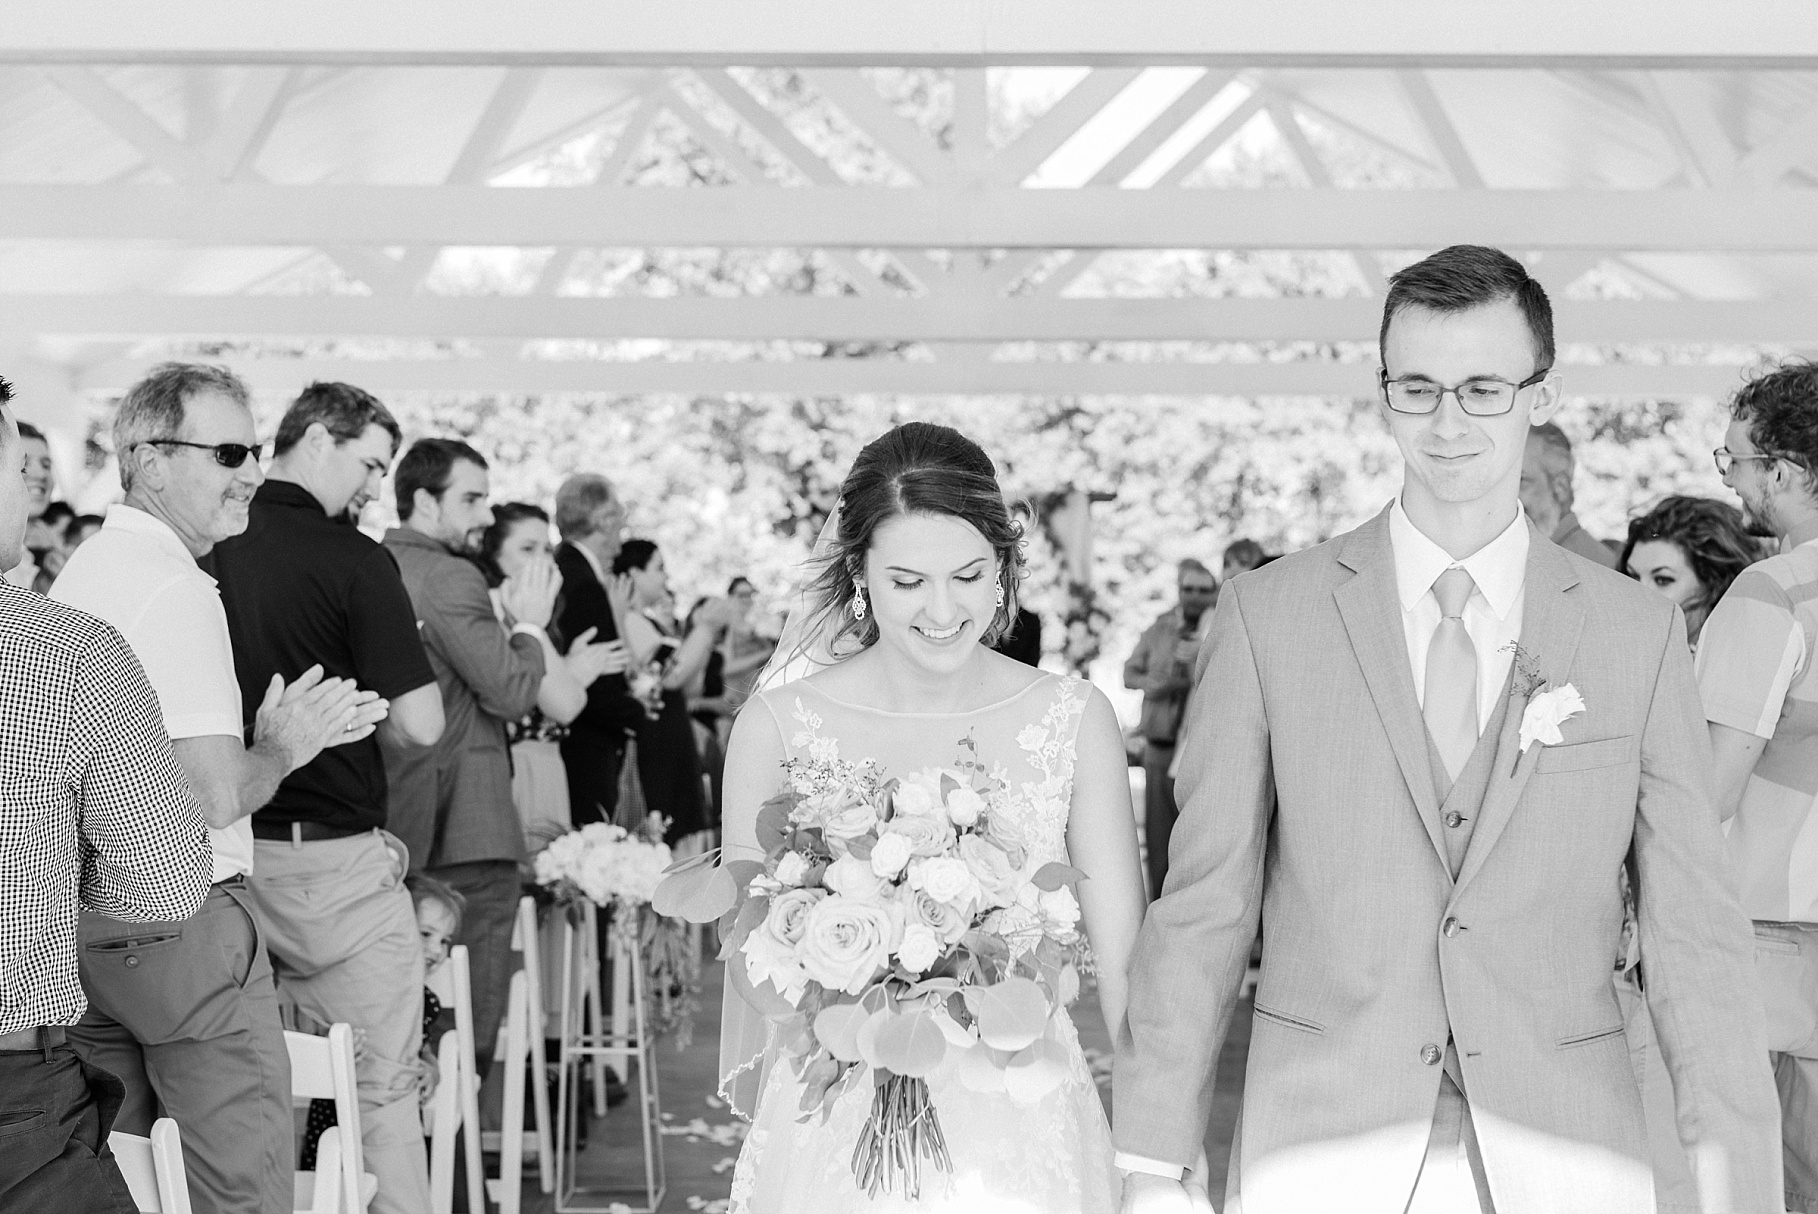 Classic Quartz, White, and Deep Green Wedding at Emerson Fields by Kelsi Kliethermes Photography Best Columbia Missouri and Maui Hawaii Wedding Photographer_0016.jpg